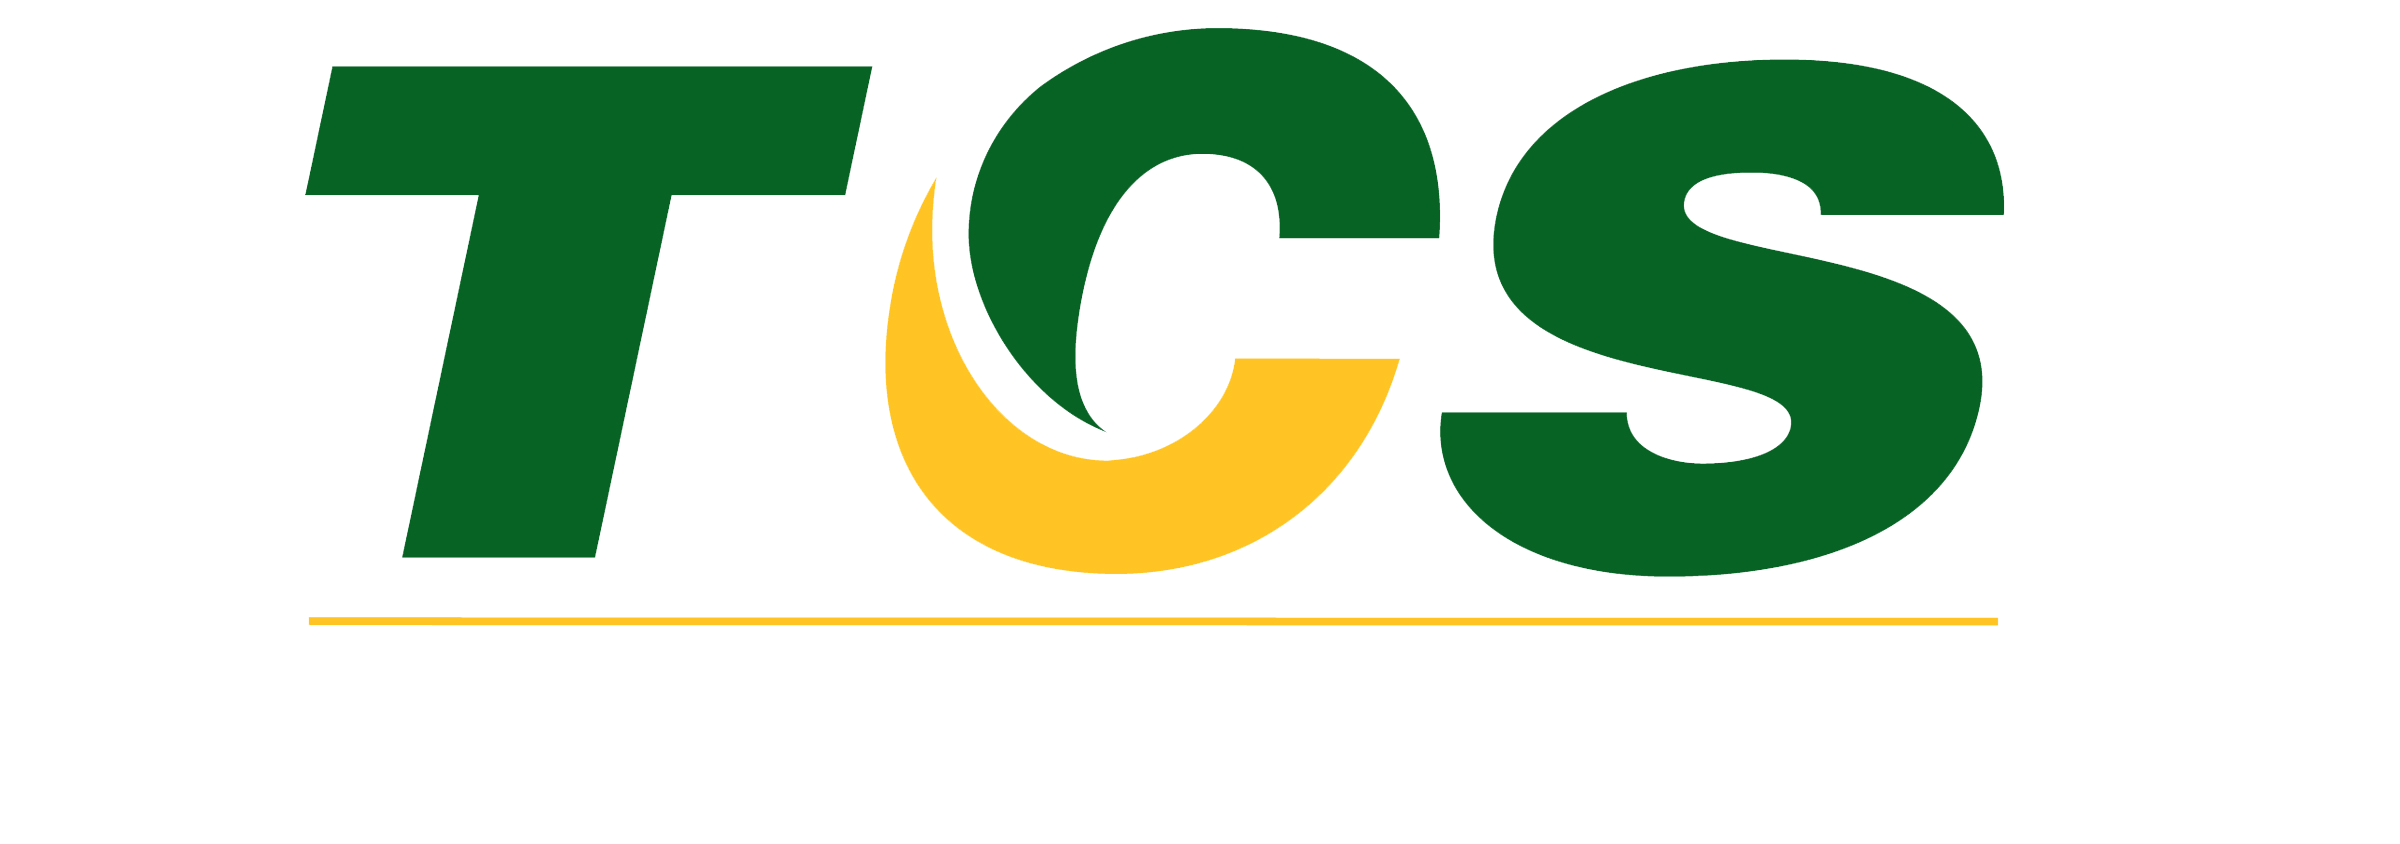 Total Credit Services